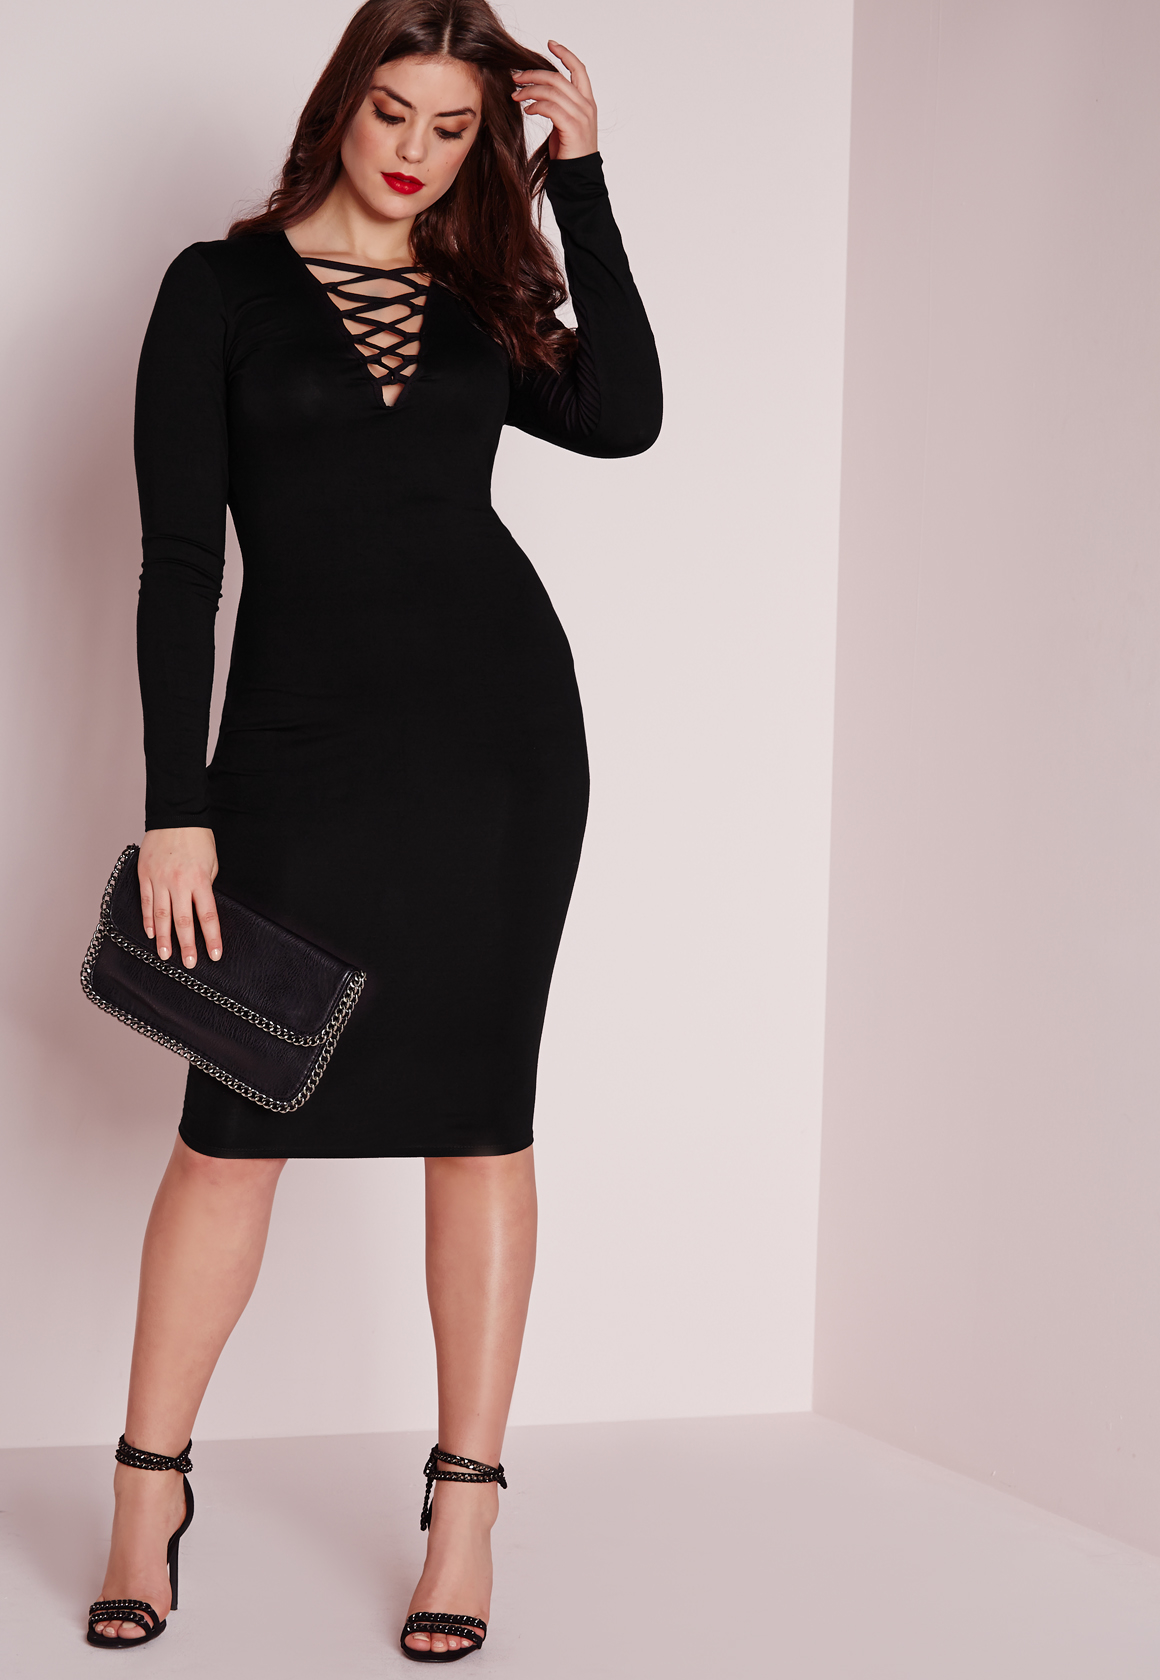 Missguided Plus Size Lace Up Dress Black in Black   Lyst